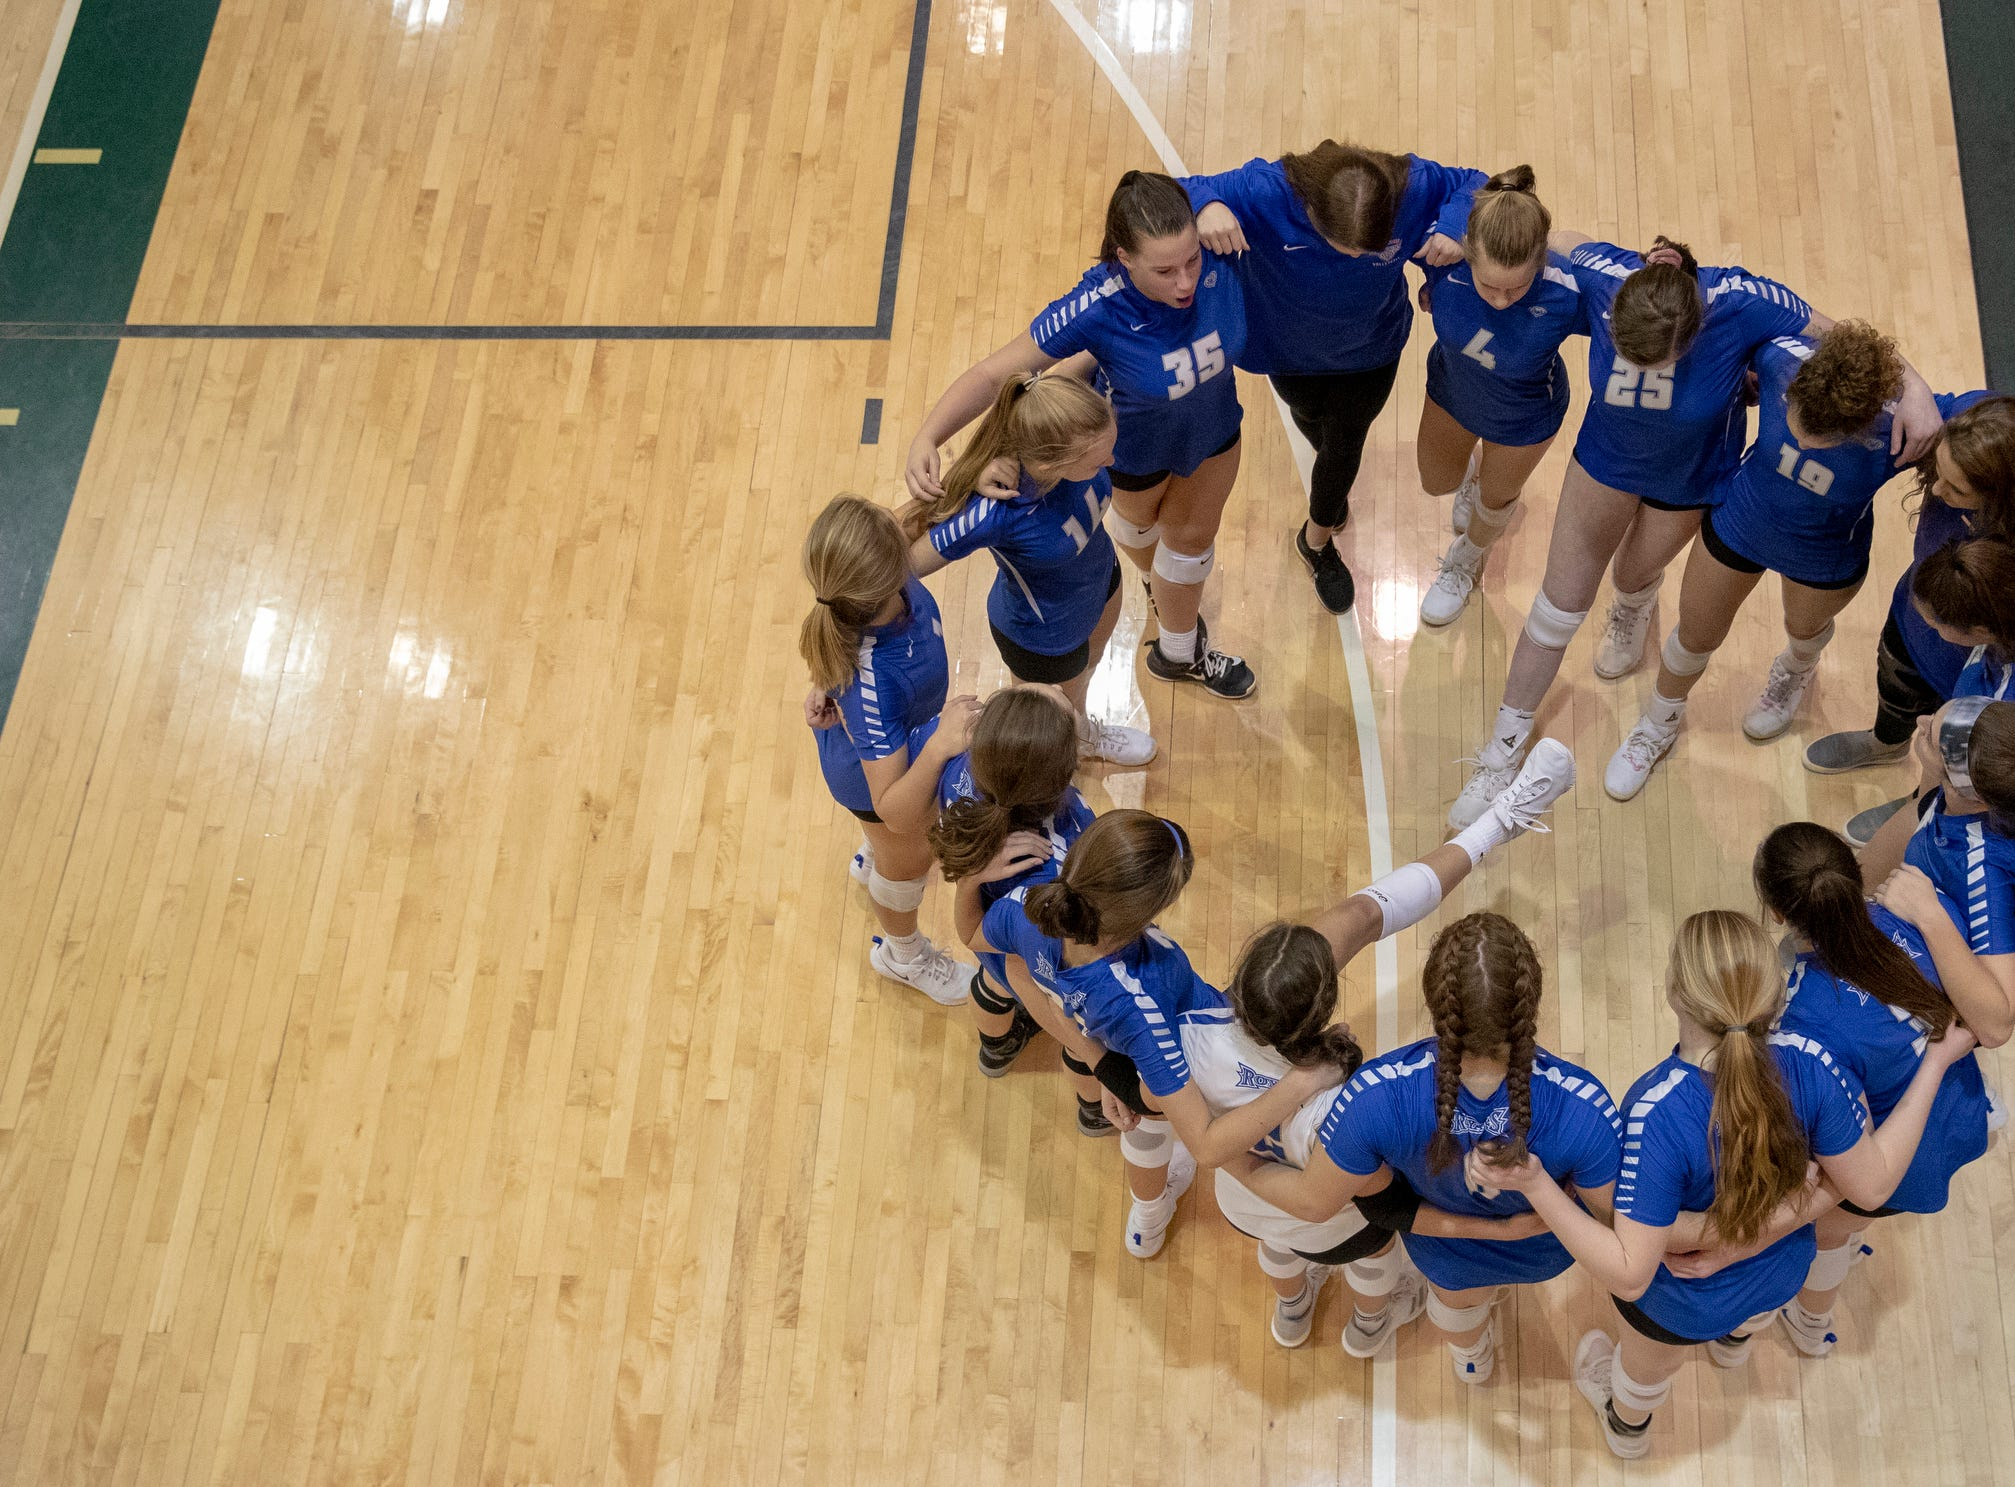 FHS defeated HSE in three straight sets in the first round of the volleyball sectional at Westfield High School, Westfield, Thursday, Oct. 11, 2018. The win matches them up with Westfield High School for a game on Saturday morning at 11a.m.